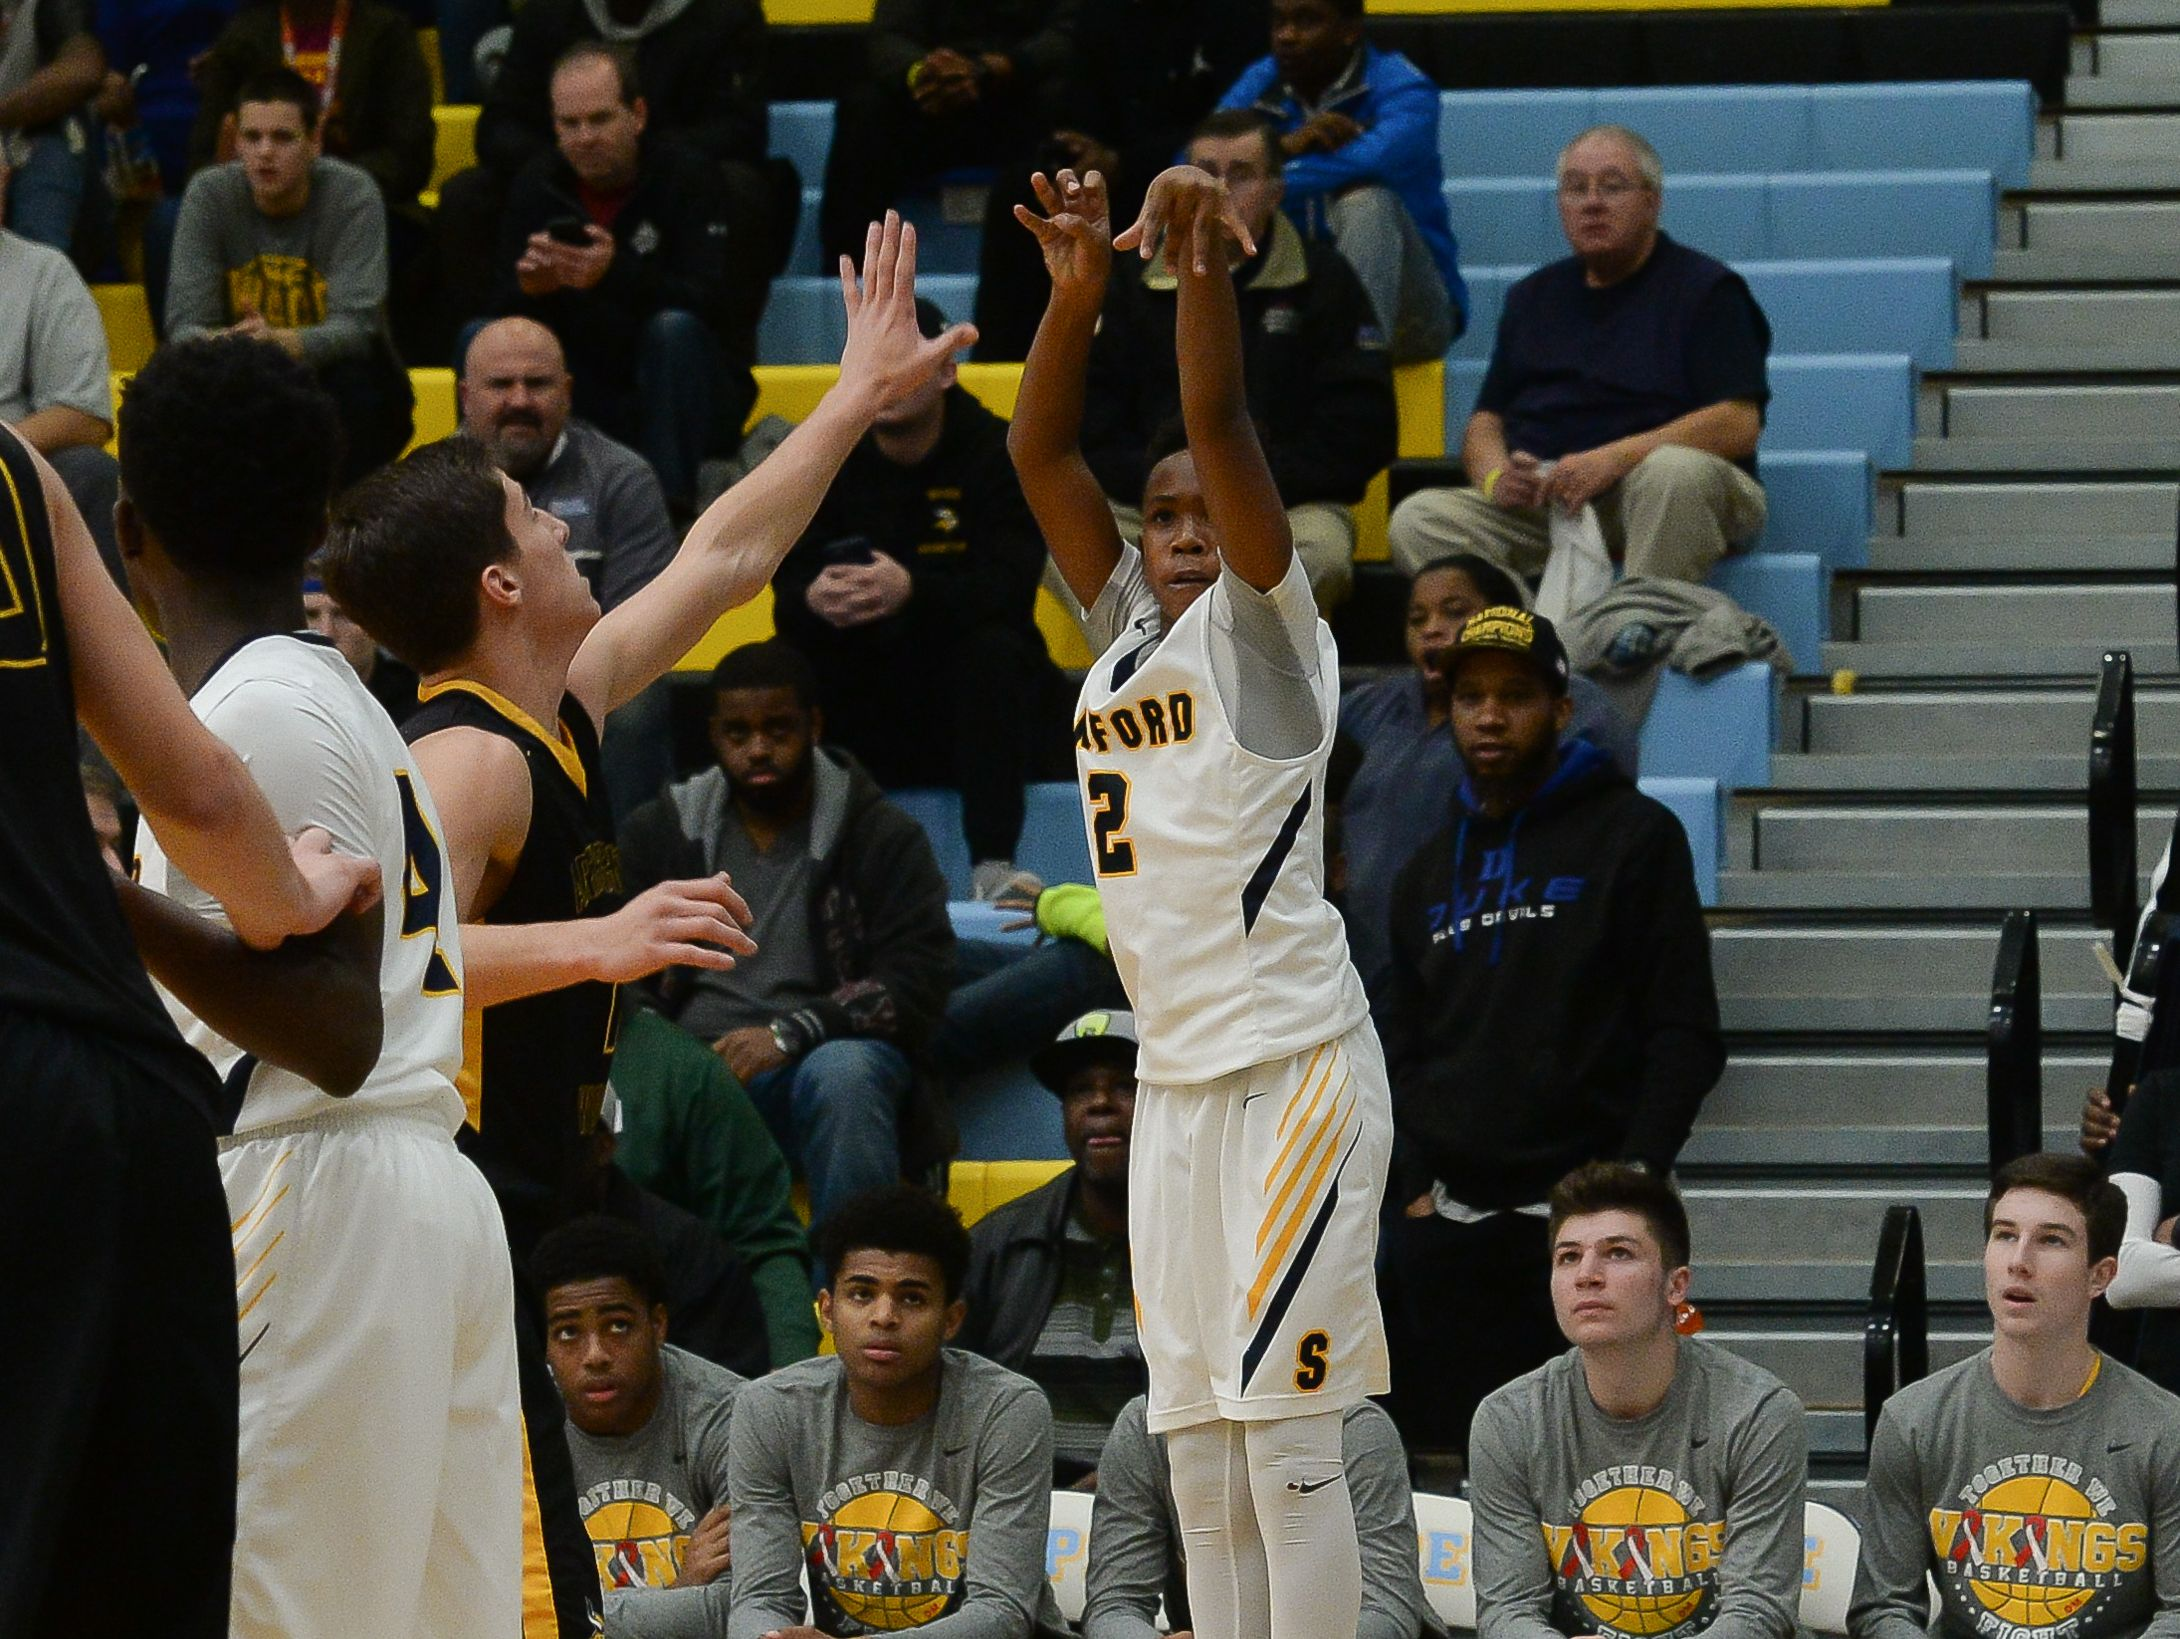 Sanford School's Corey Perkins with the jumper against Archbishop Wood during the Slam Dunk to the Beach on Wednesday, Dec 28, 2016. Final Score Sanford School- 47 ,Archbishop Wood- 72